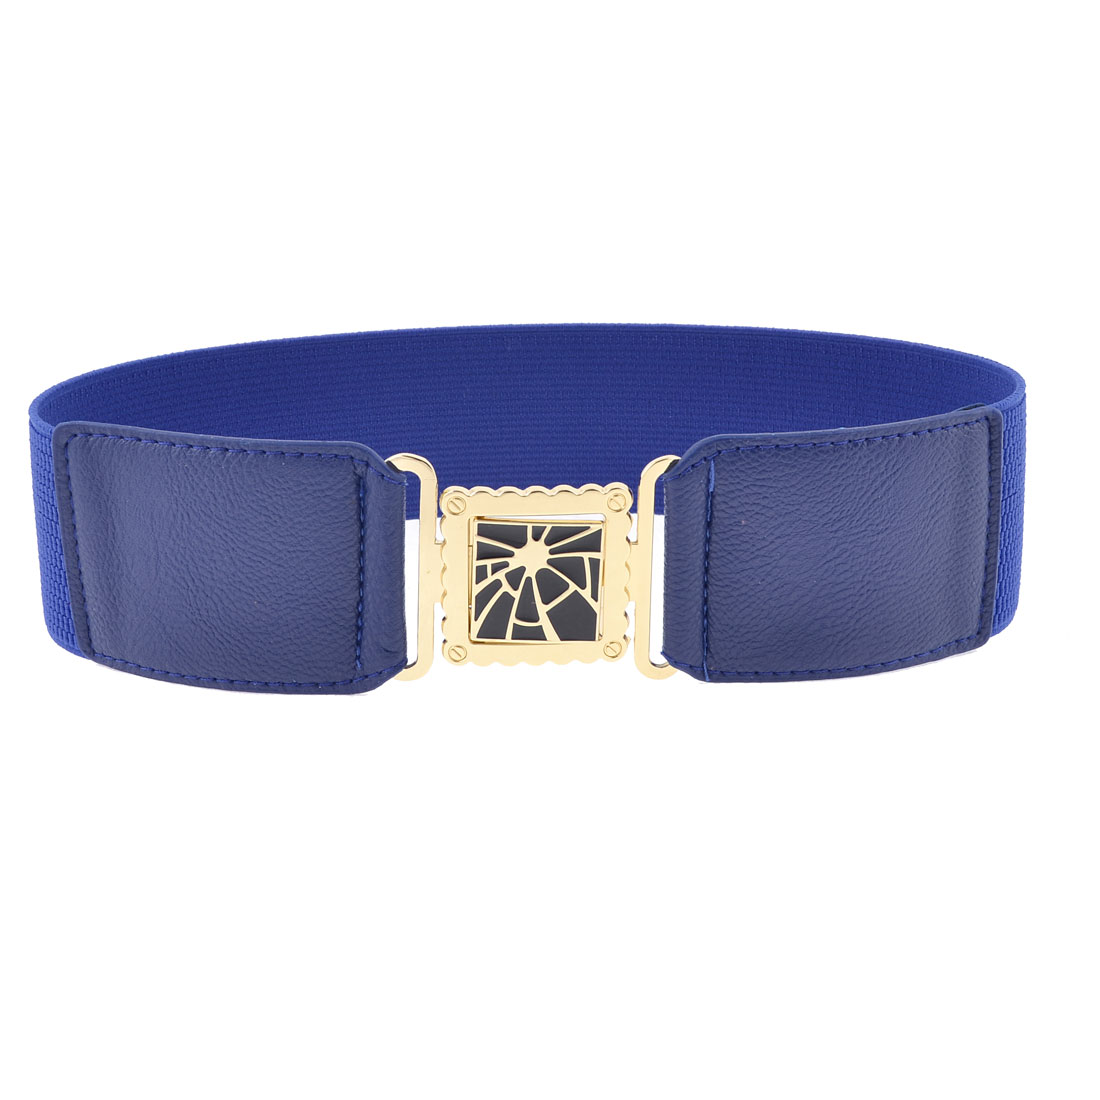 Square Shaped Interlock Buckle Textured Elastic Waist Belt 6cm Width Dark Blue